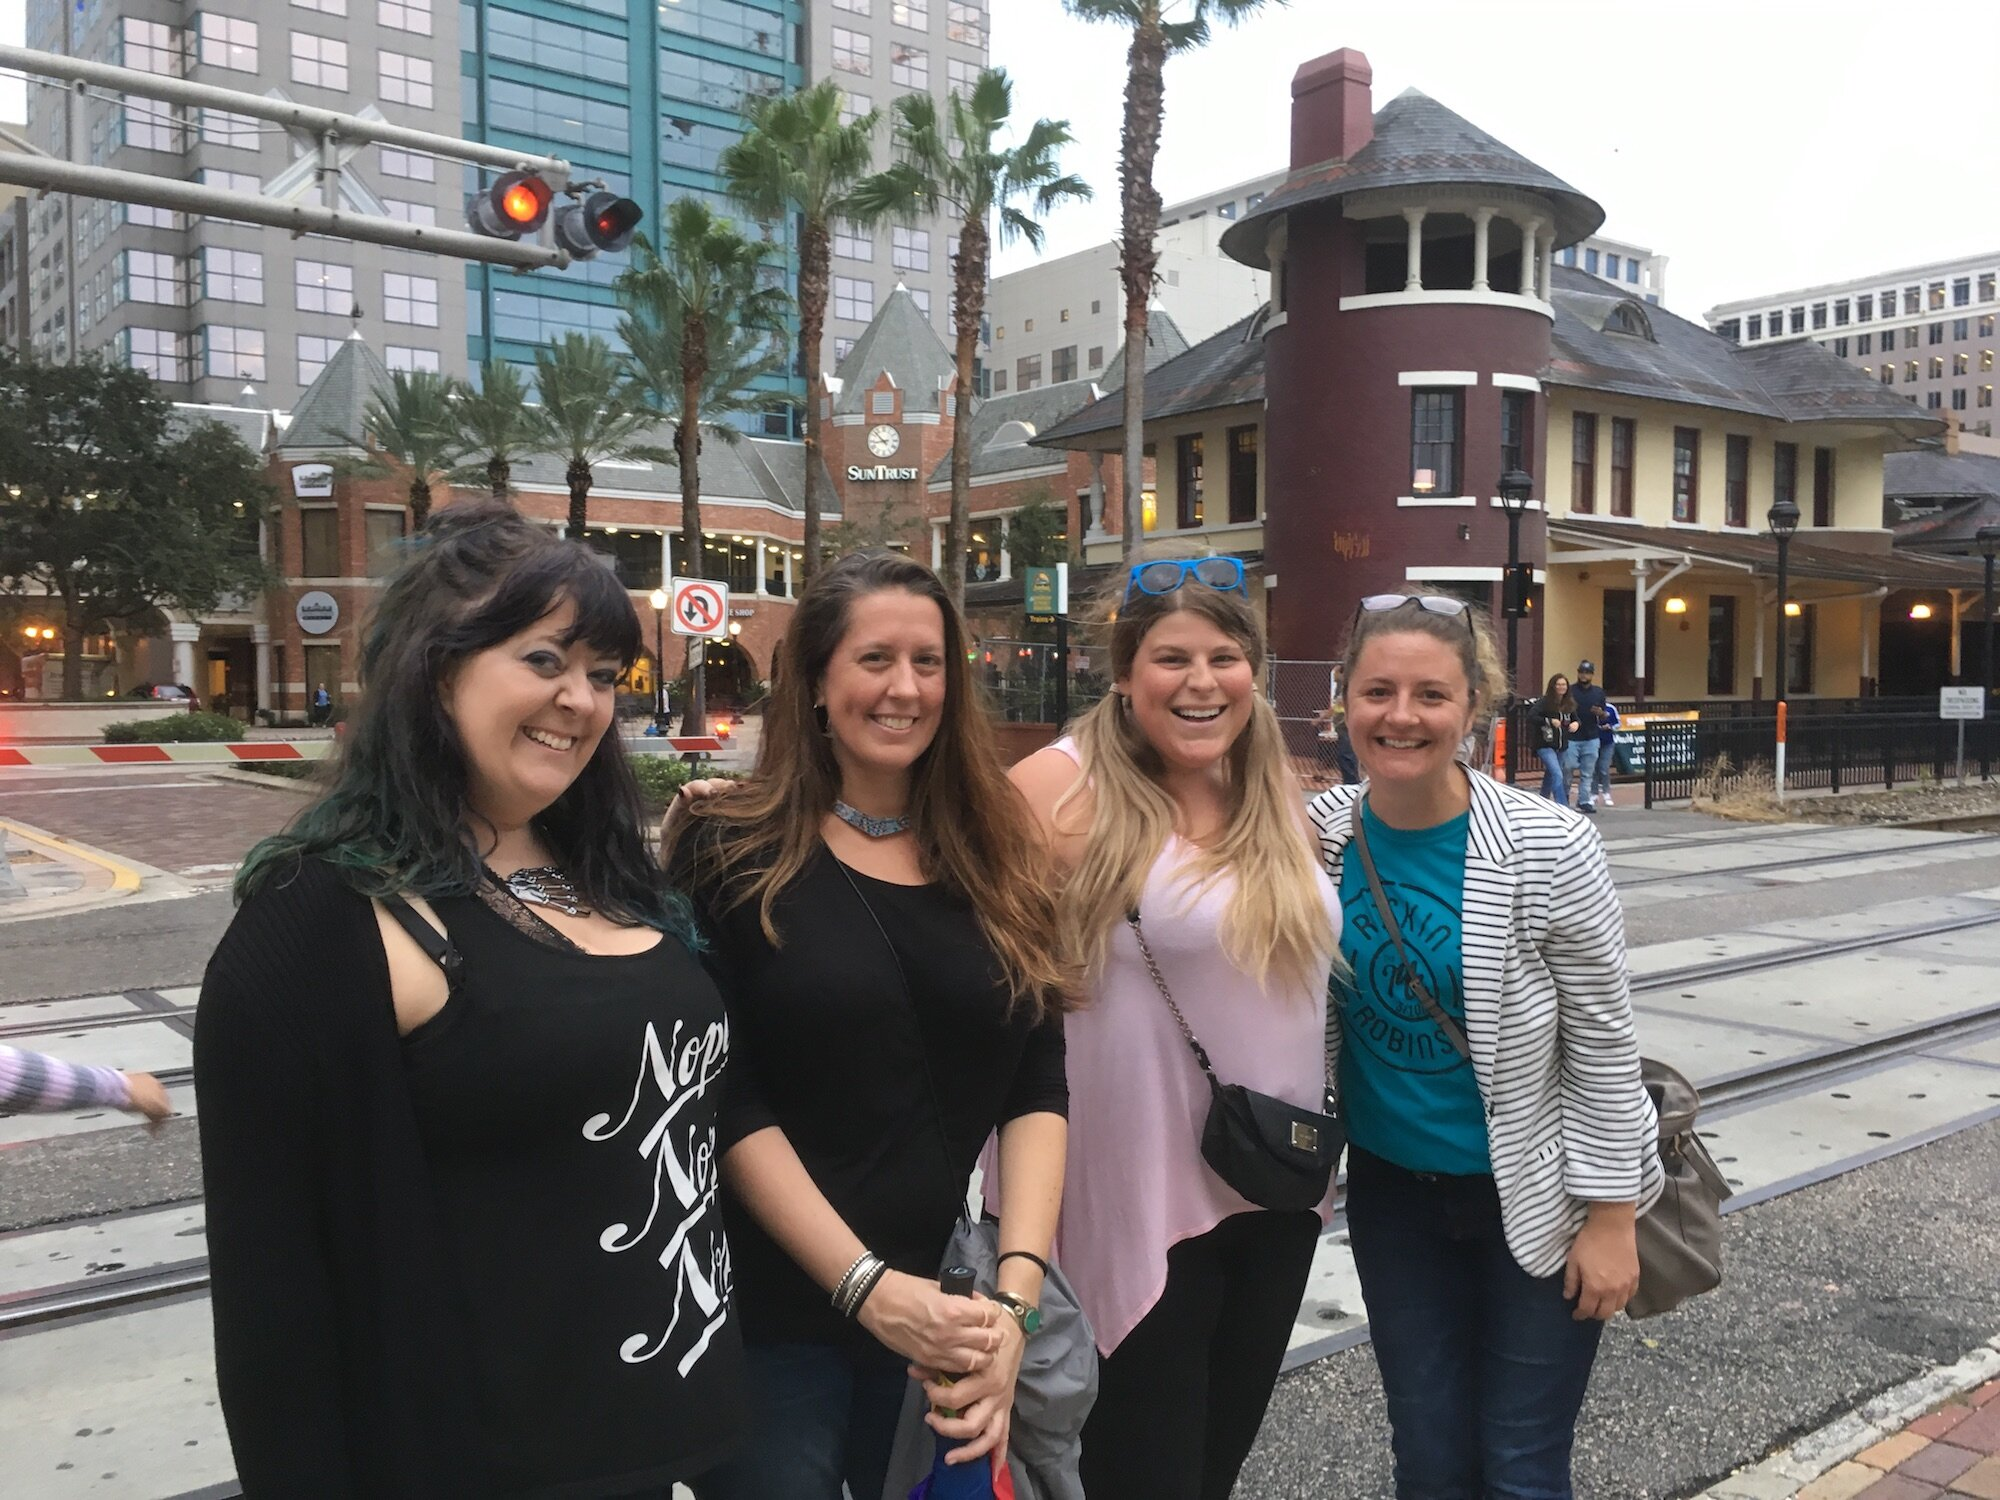 Tour guests on the Historic Downtown Orlando Walking Tour